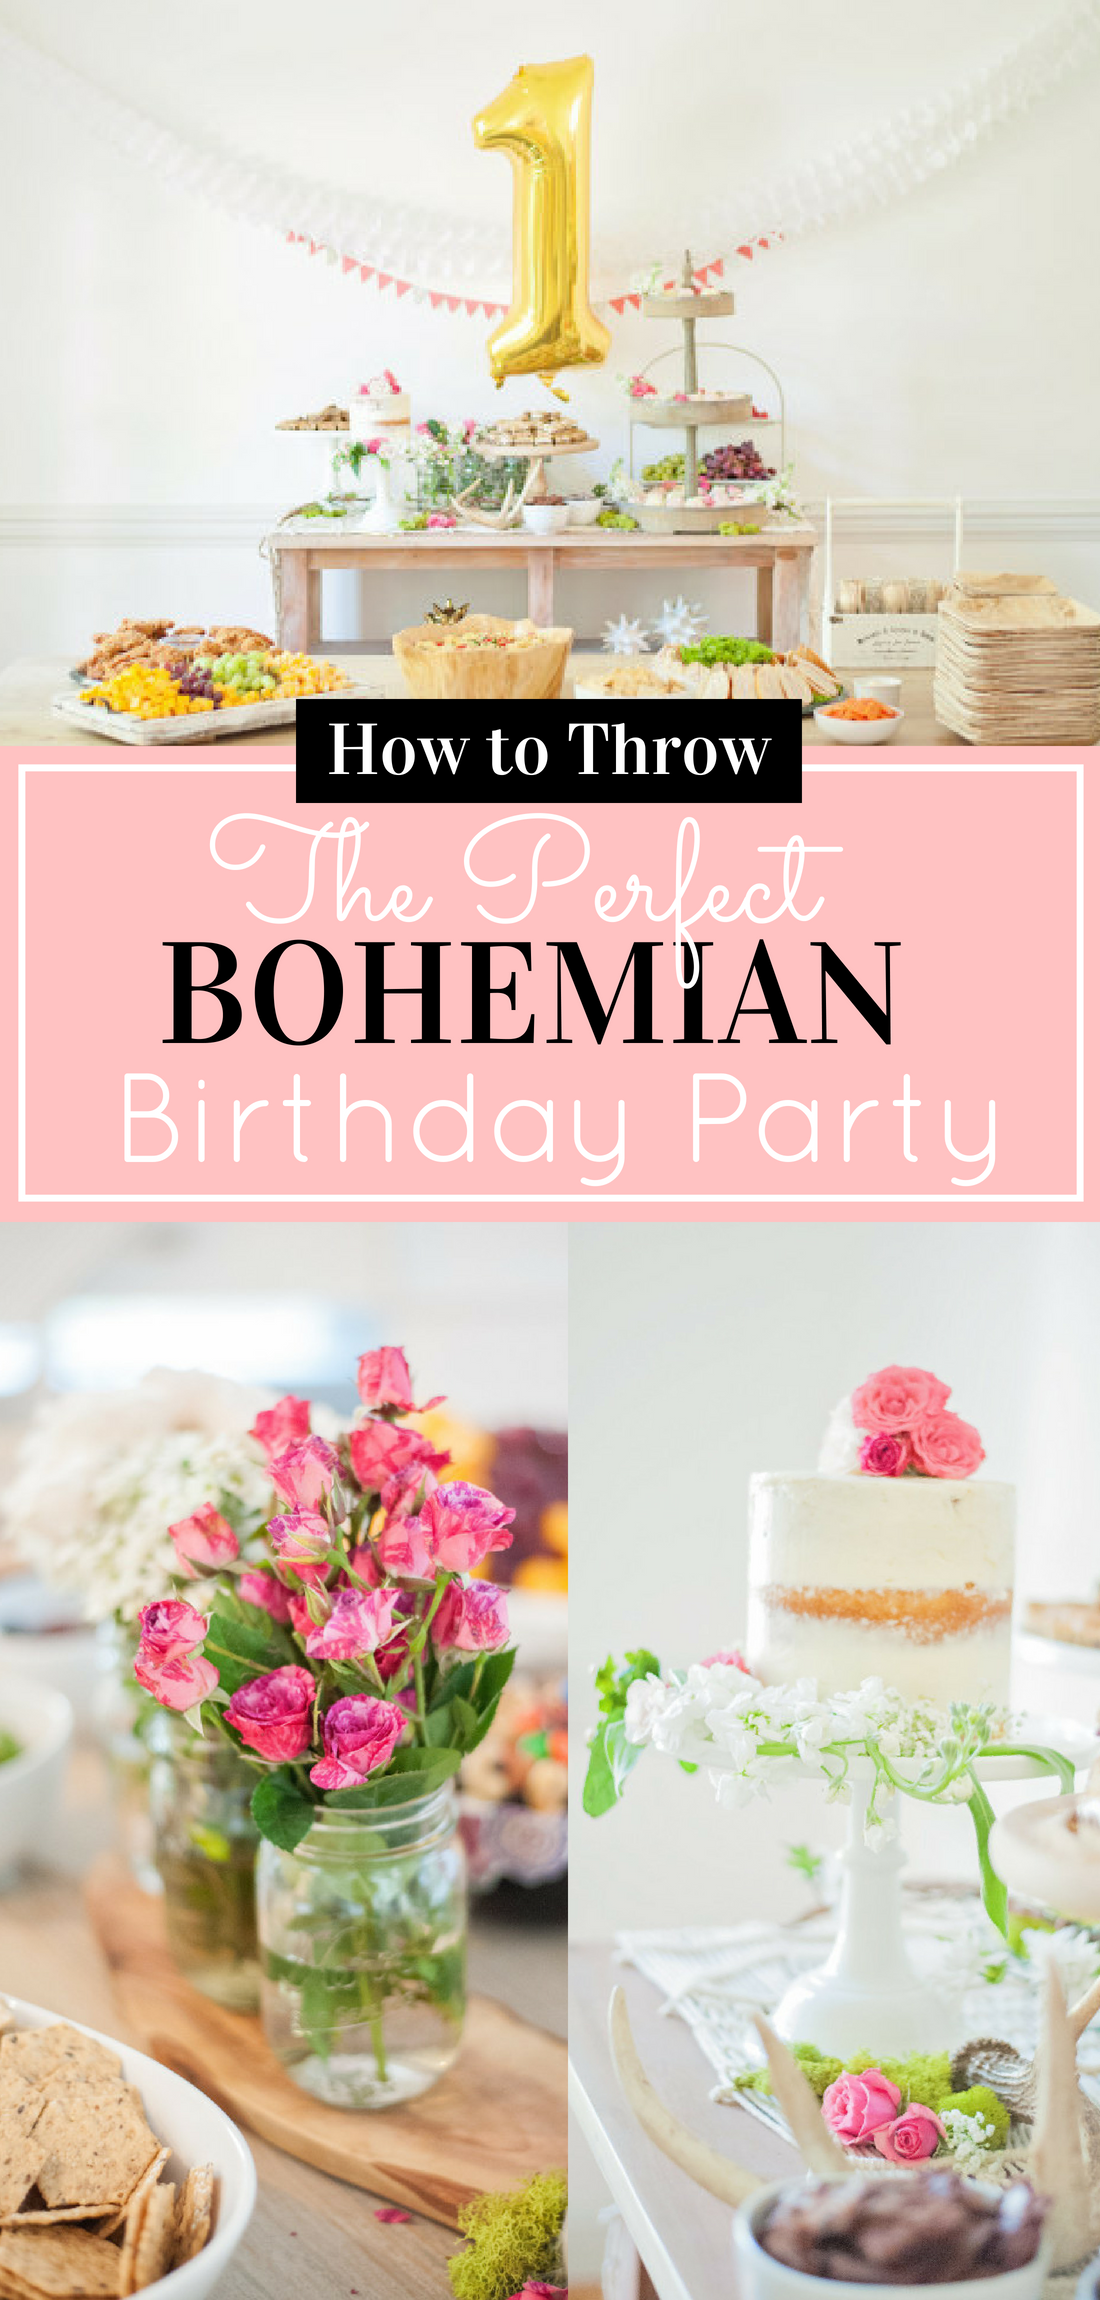 Bohemian Party - Baby's First Birthday - Inspiration; featured on Style Me Pretty Living. #birthday #firstbirthday #firstbirthdayparty #birthdayparty #babybirthday #babysbirthday #bohemianparty #bohemianbirthday | glitterinc.com | @glitterinc